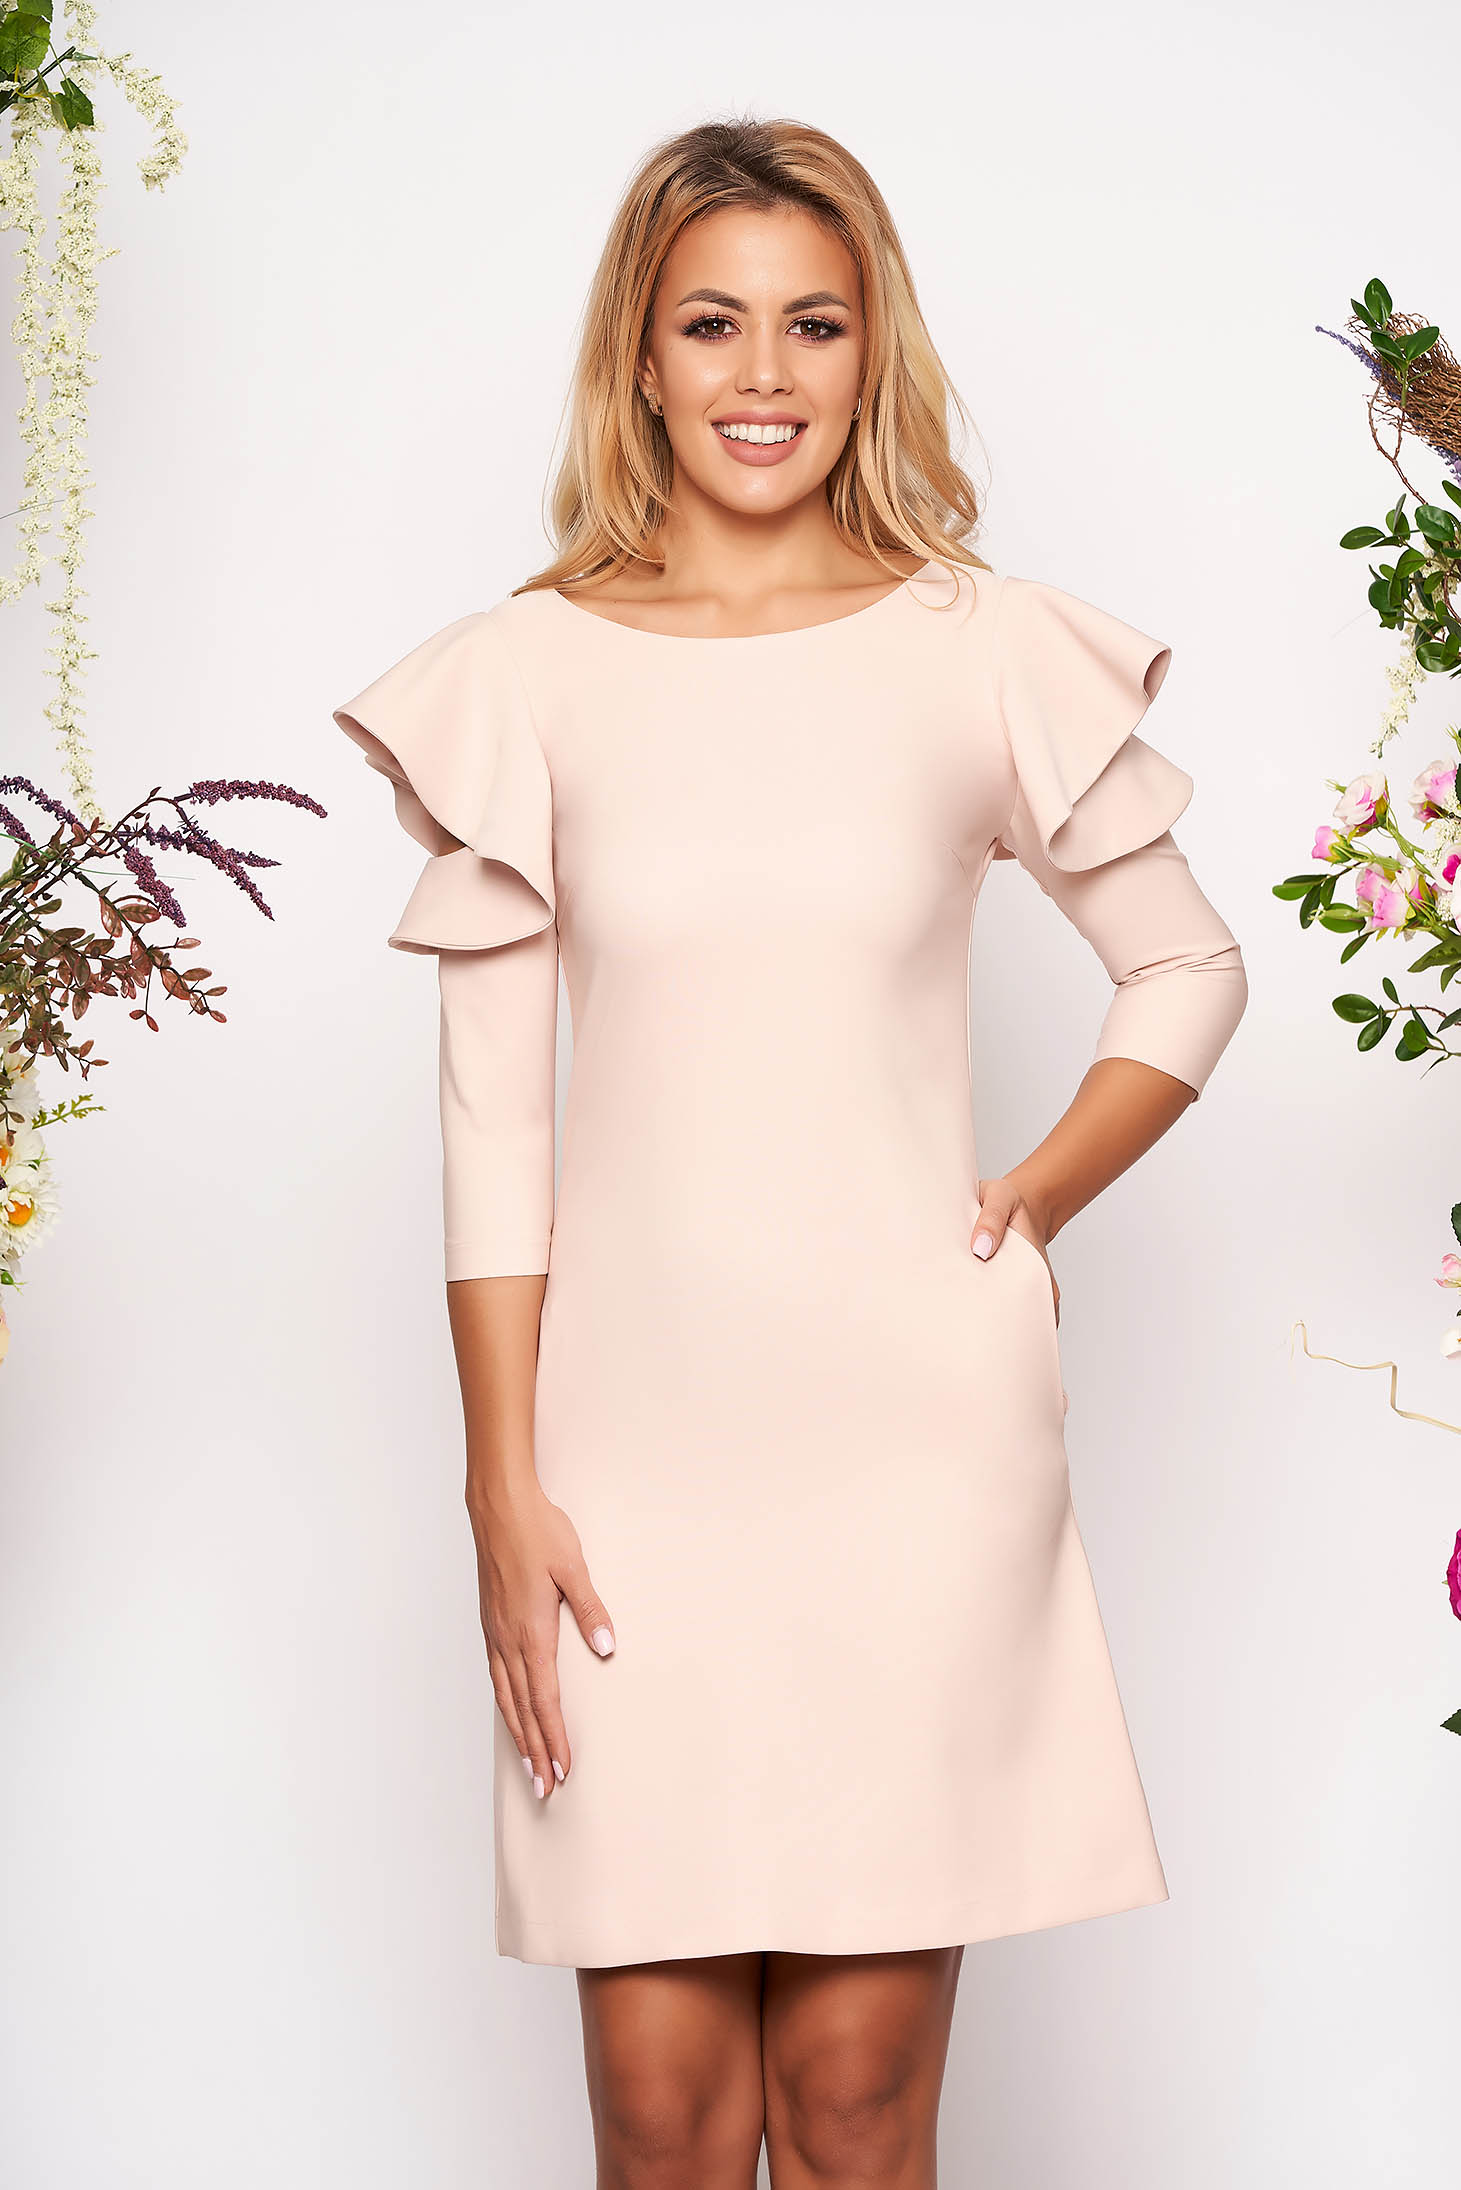 Lightpink daily elegant a-line dress slightly elastic fabric with ruffled sleeves